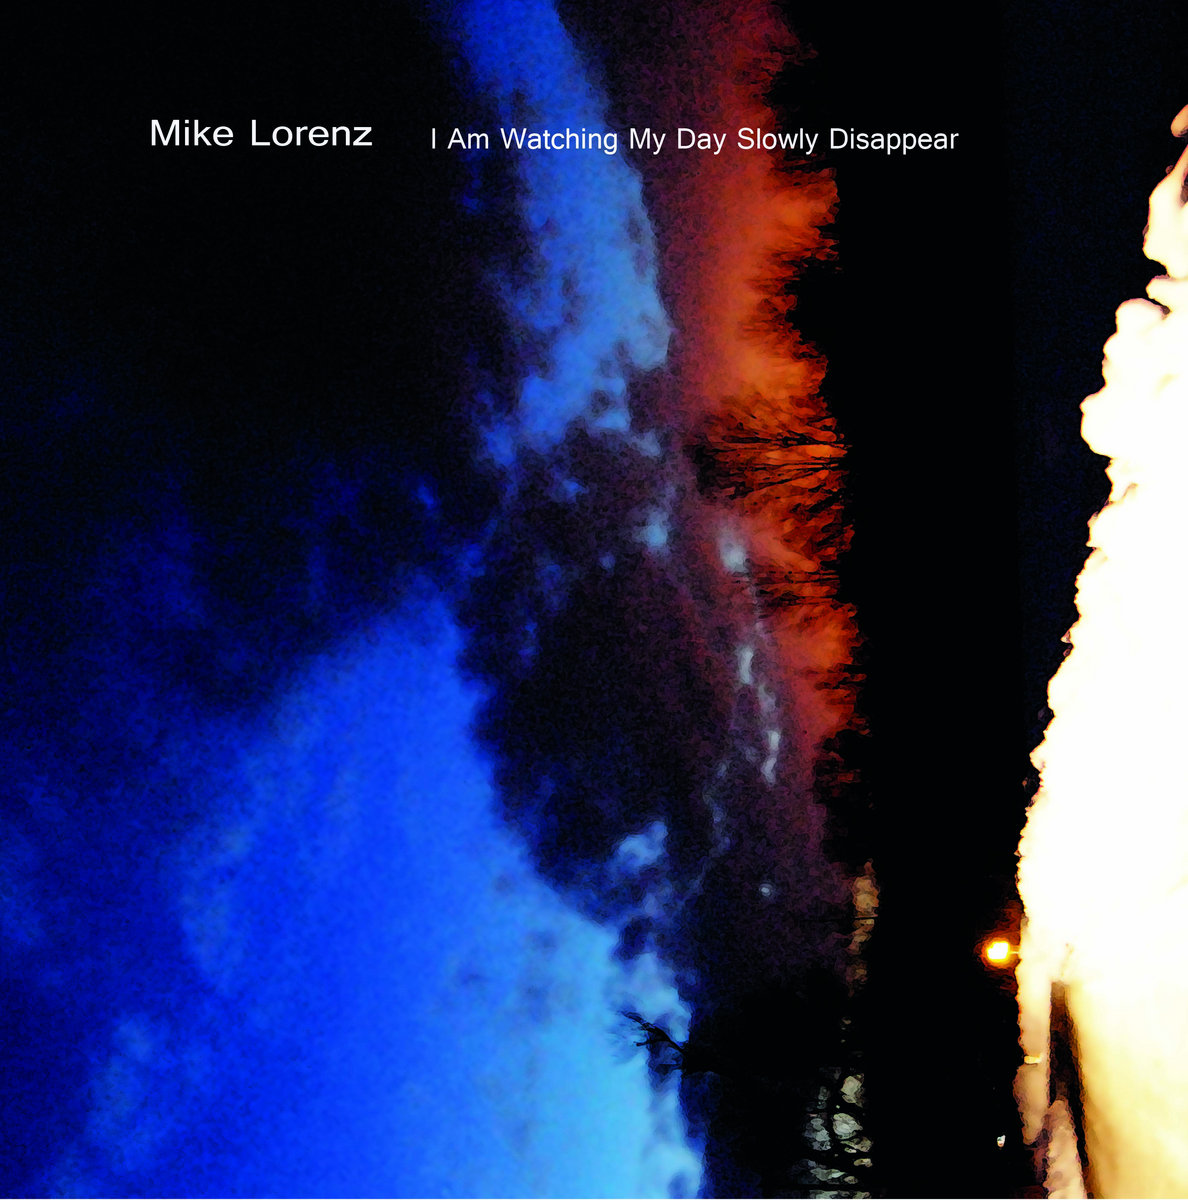 Album I'm Watching My Day Slowly Disappear by Mike Lorenz